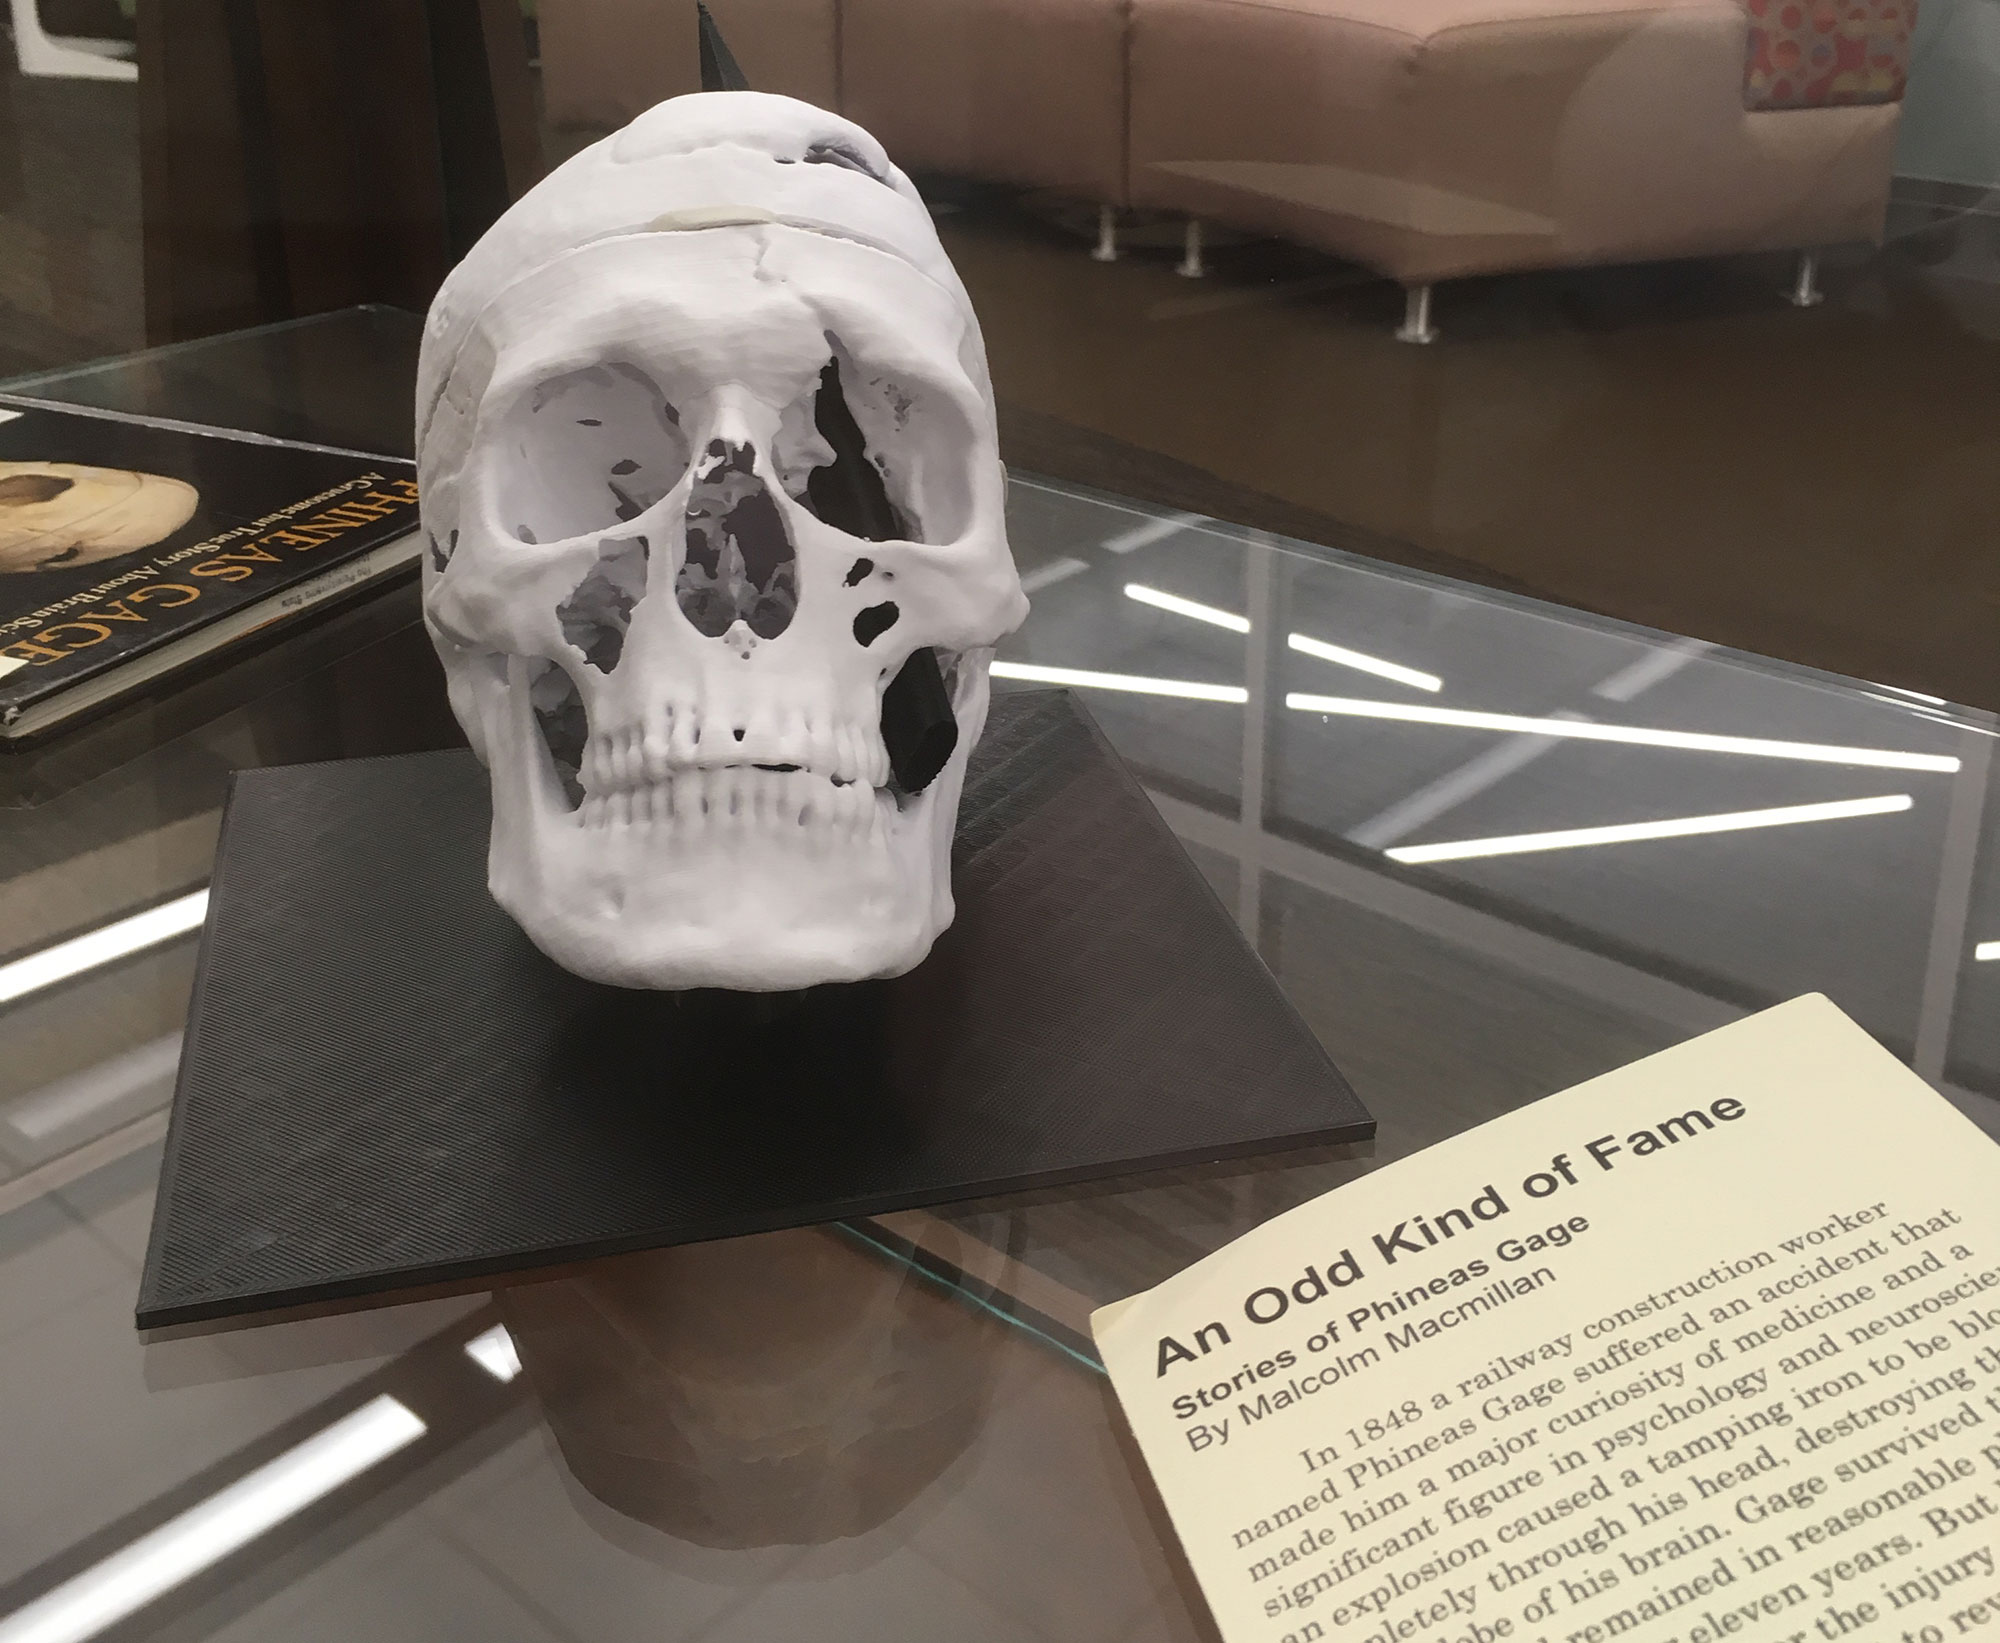 A 3D-printed replica of the skull of Phineas Gage and a copy of an 1850s manuscript about him are seen in a display case.